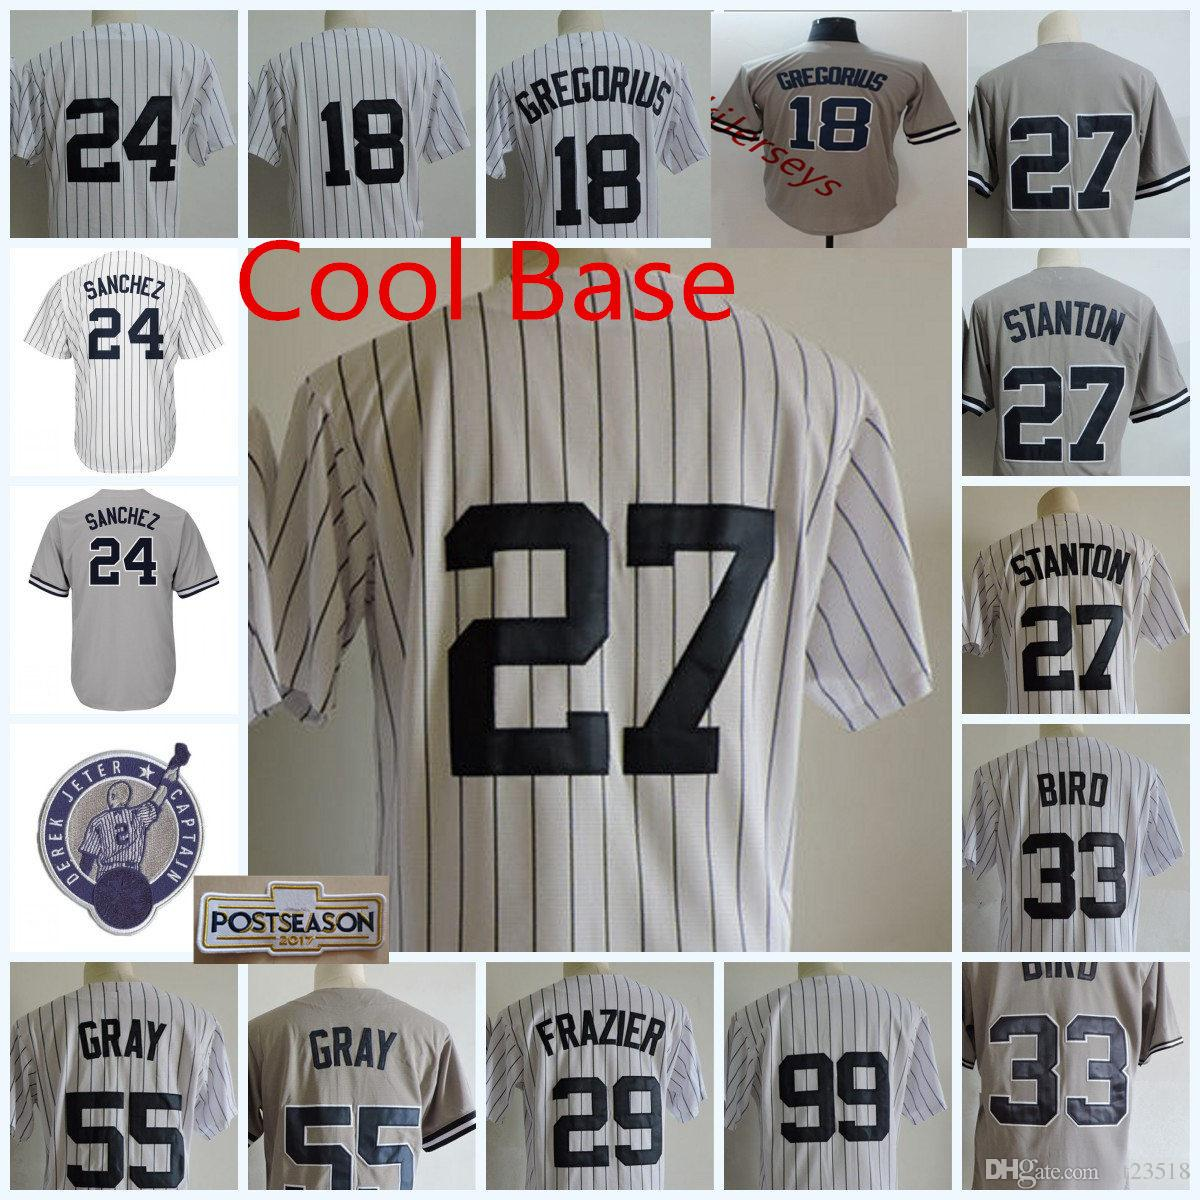 54609e601 Mens New York Sonny Gray Jerseys Stitched Todd Frazier Greg Bird Giancarlo  Stanton Didi Gregorius Gary Sanchez Chapman Cool Base Jerseys S-3 Gary  Sanchez ...